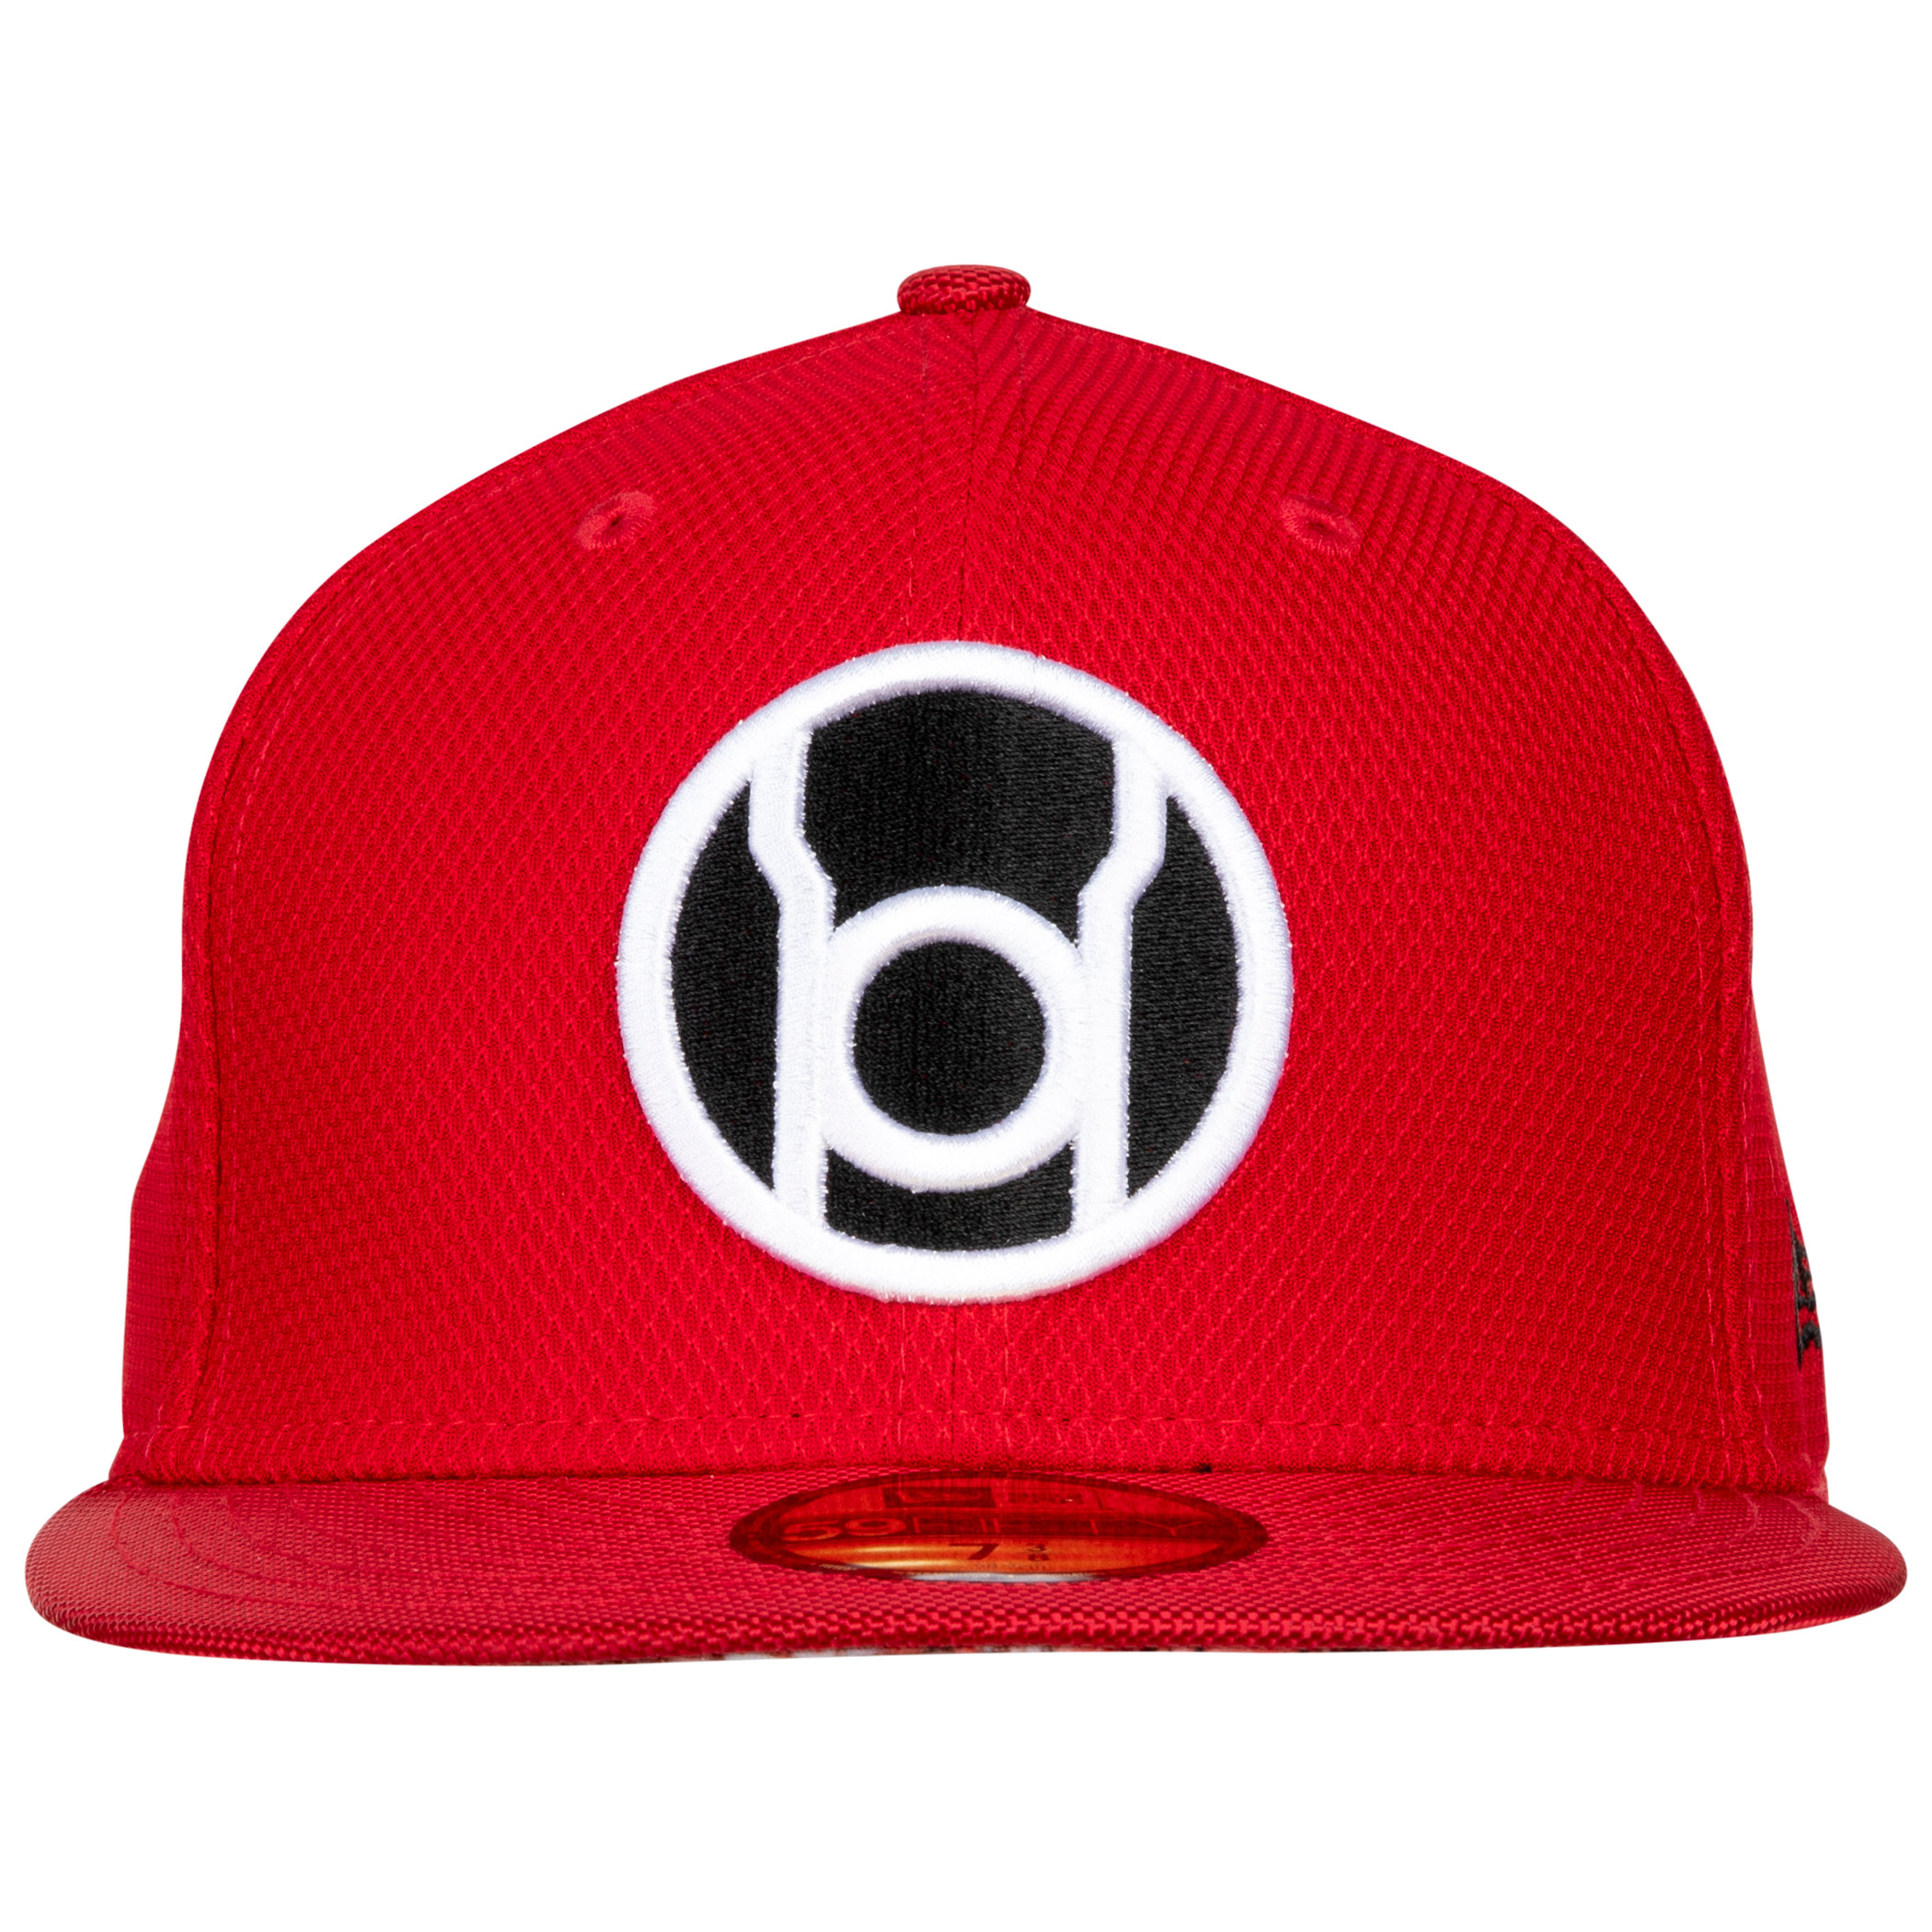 Red Lantern Symbol Armor New Era 59Fifty Fitted Hat